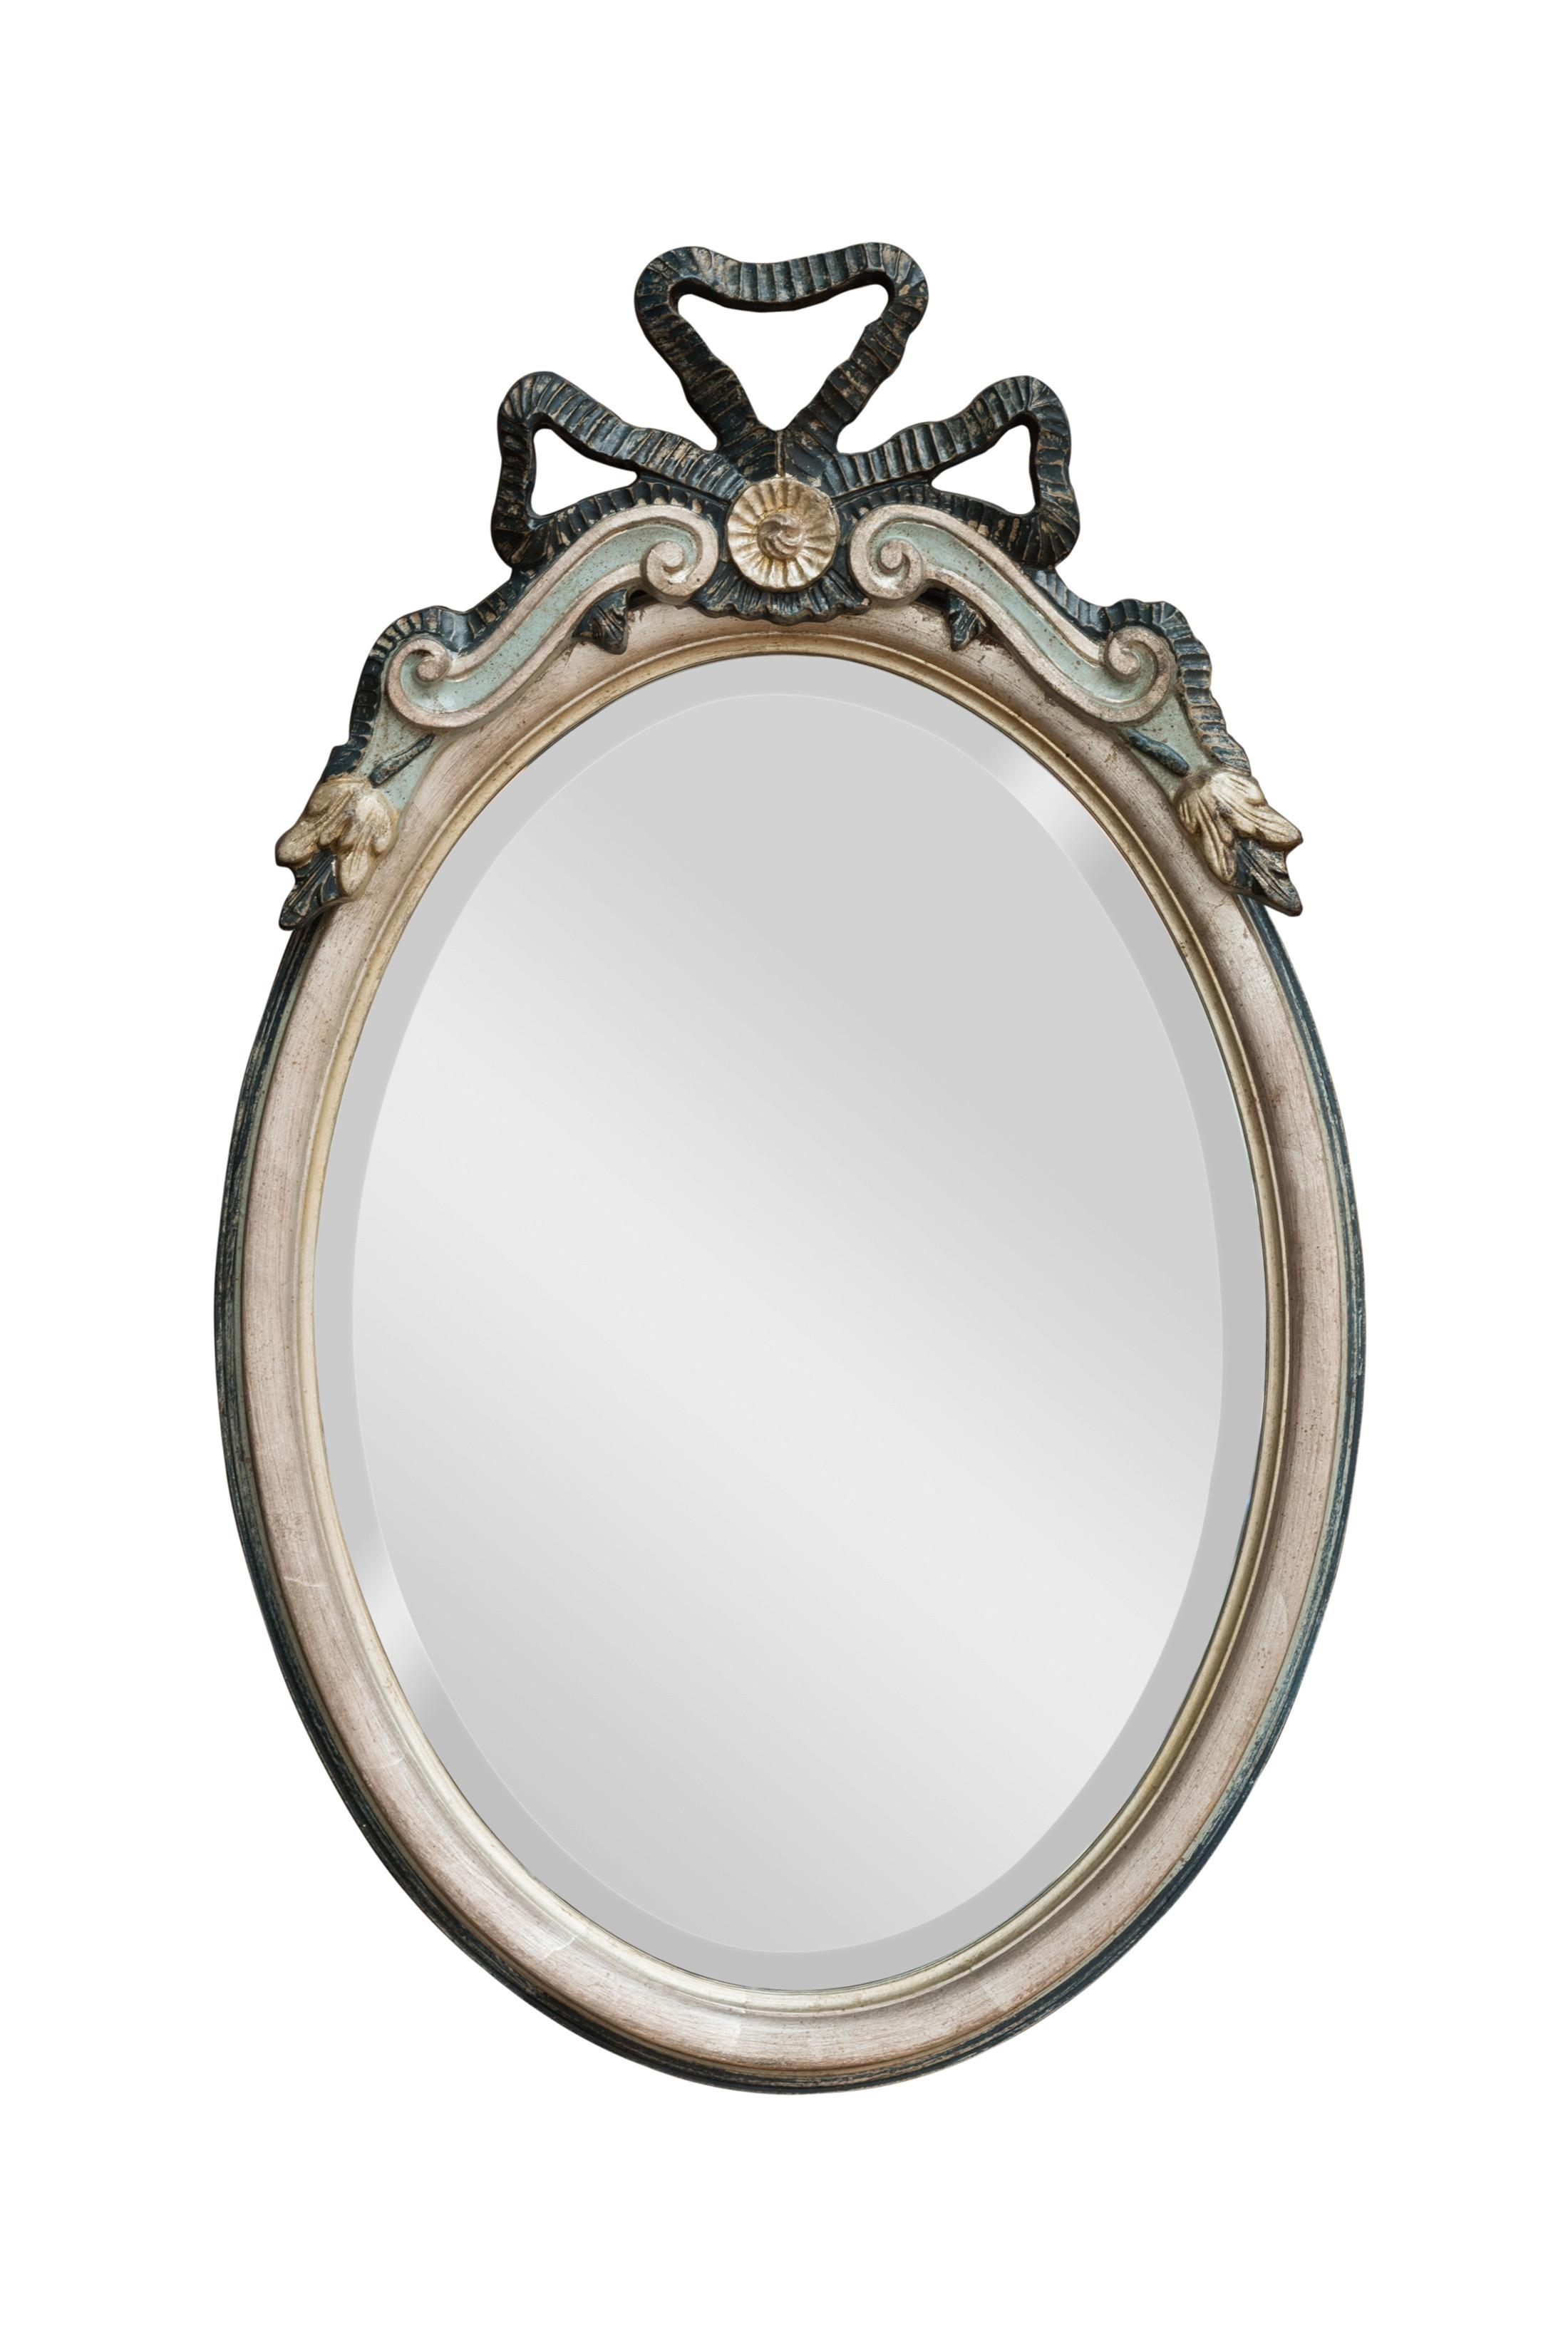 Bow Top Oval Mirror | Hall Mirrors For Sale – Panfili Mirrors Throughout Oval Silver Mirror (Image 4 of 20)